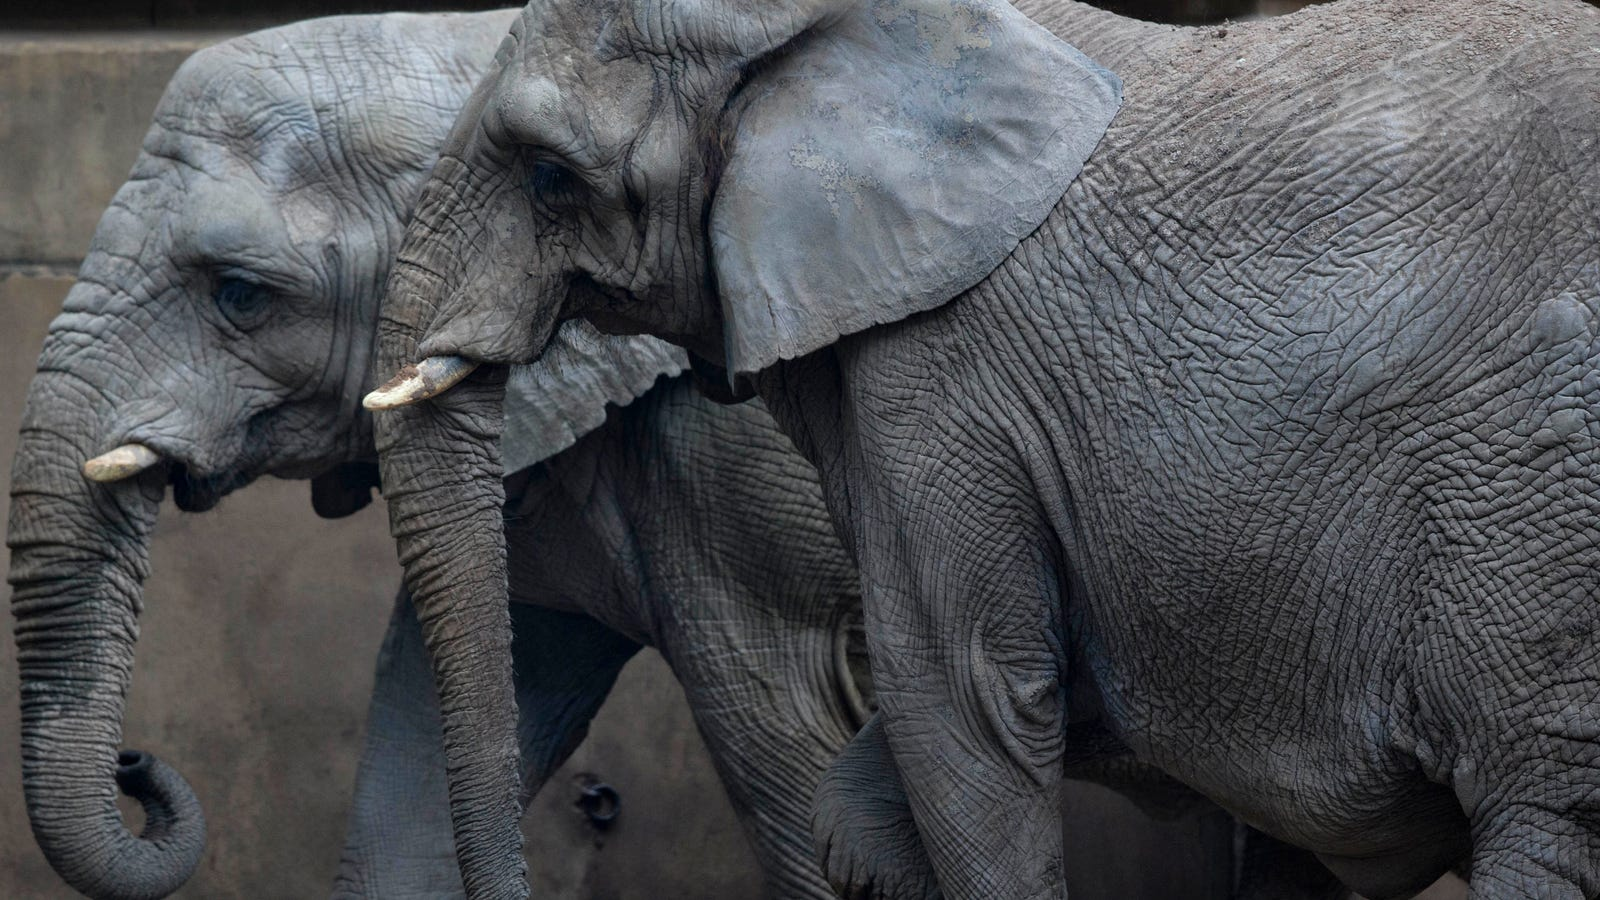 Connecticut Lawsuit Is the First to Claim Elephants as Legal Persons